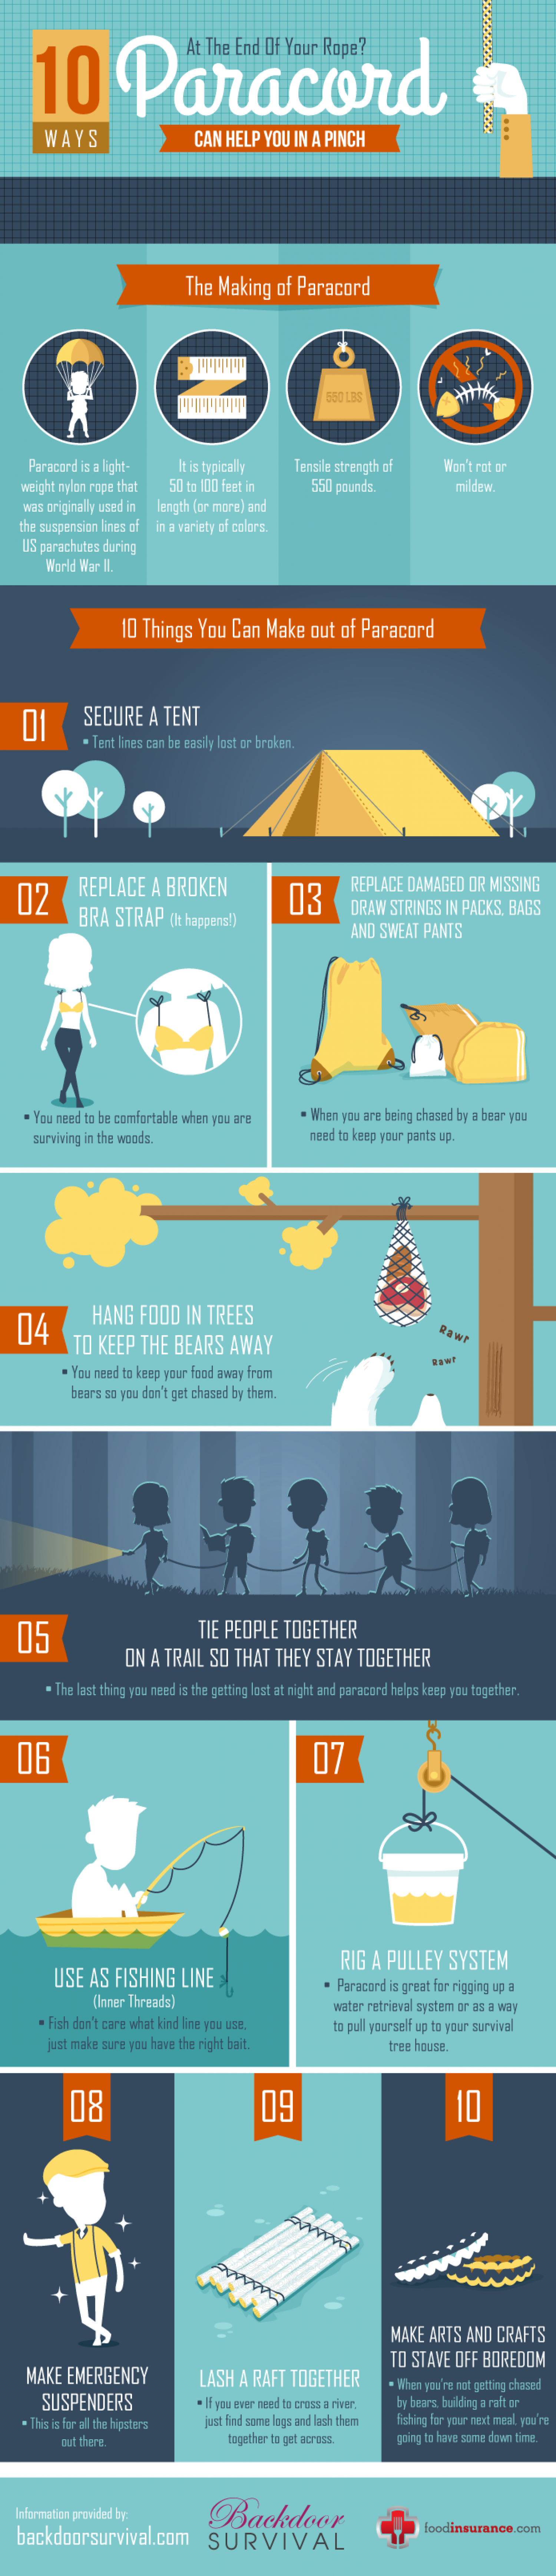 10 Ways Paracord Can Help You in a Pinch Infographic